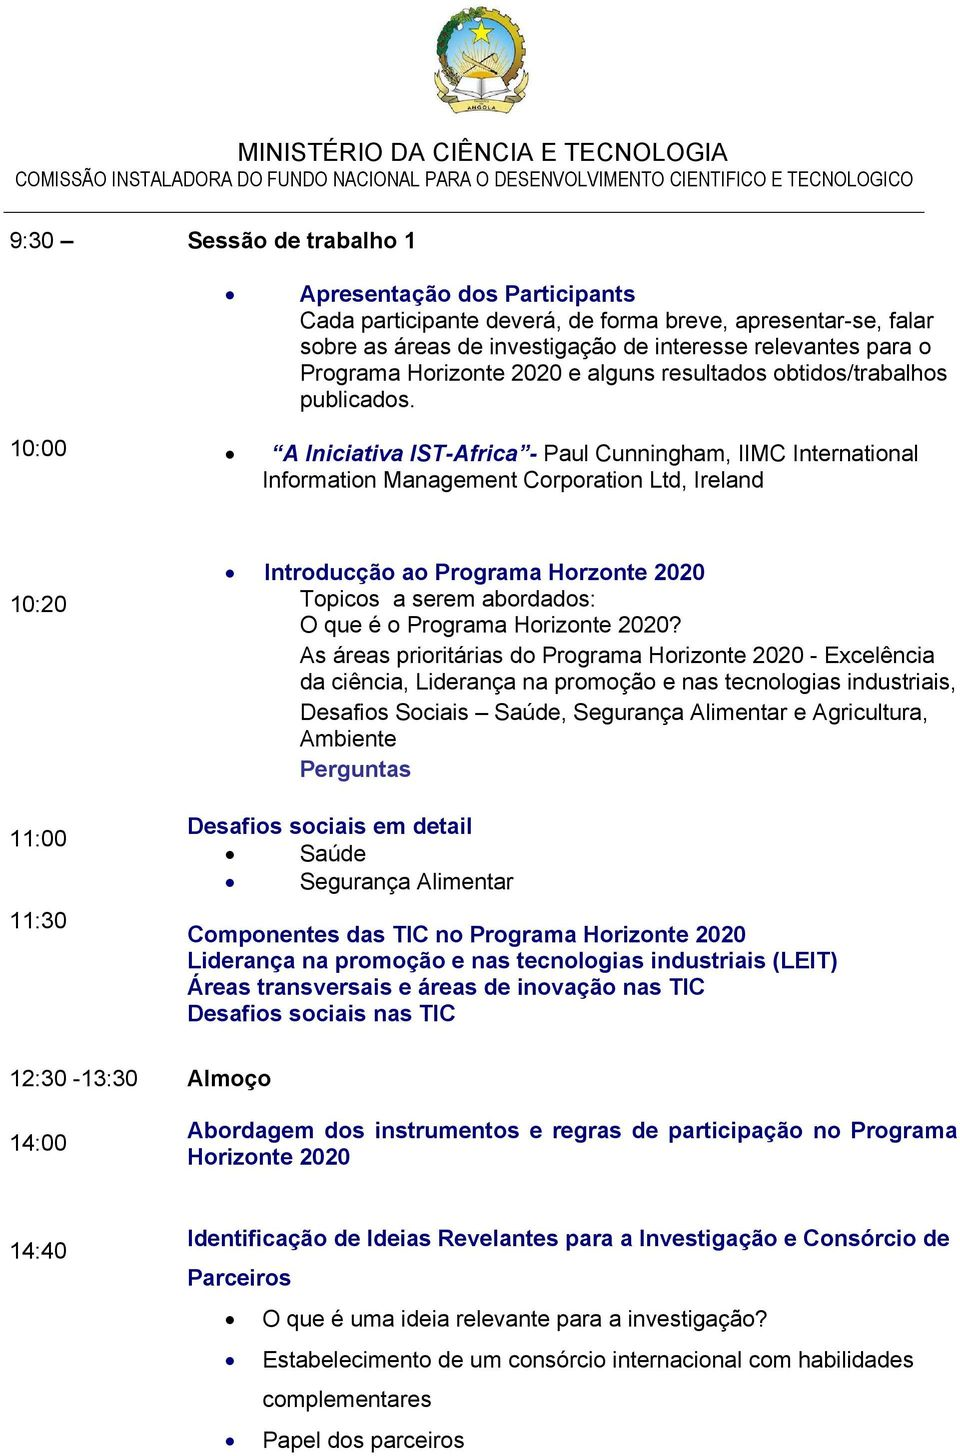 10:00 A Iniciativa IST-Africa - Paul Cunningham, IIMC International Information Management Corporation Ltd, Ireland 10:20 11:00 11:30 Introducção ao Programa Horzonte 2020 Topicos a serem abordados: